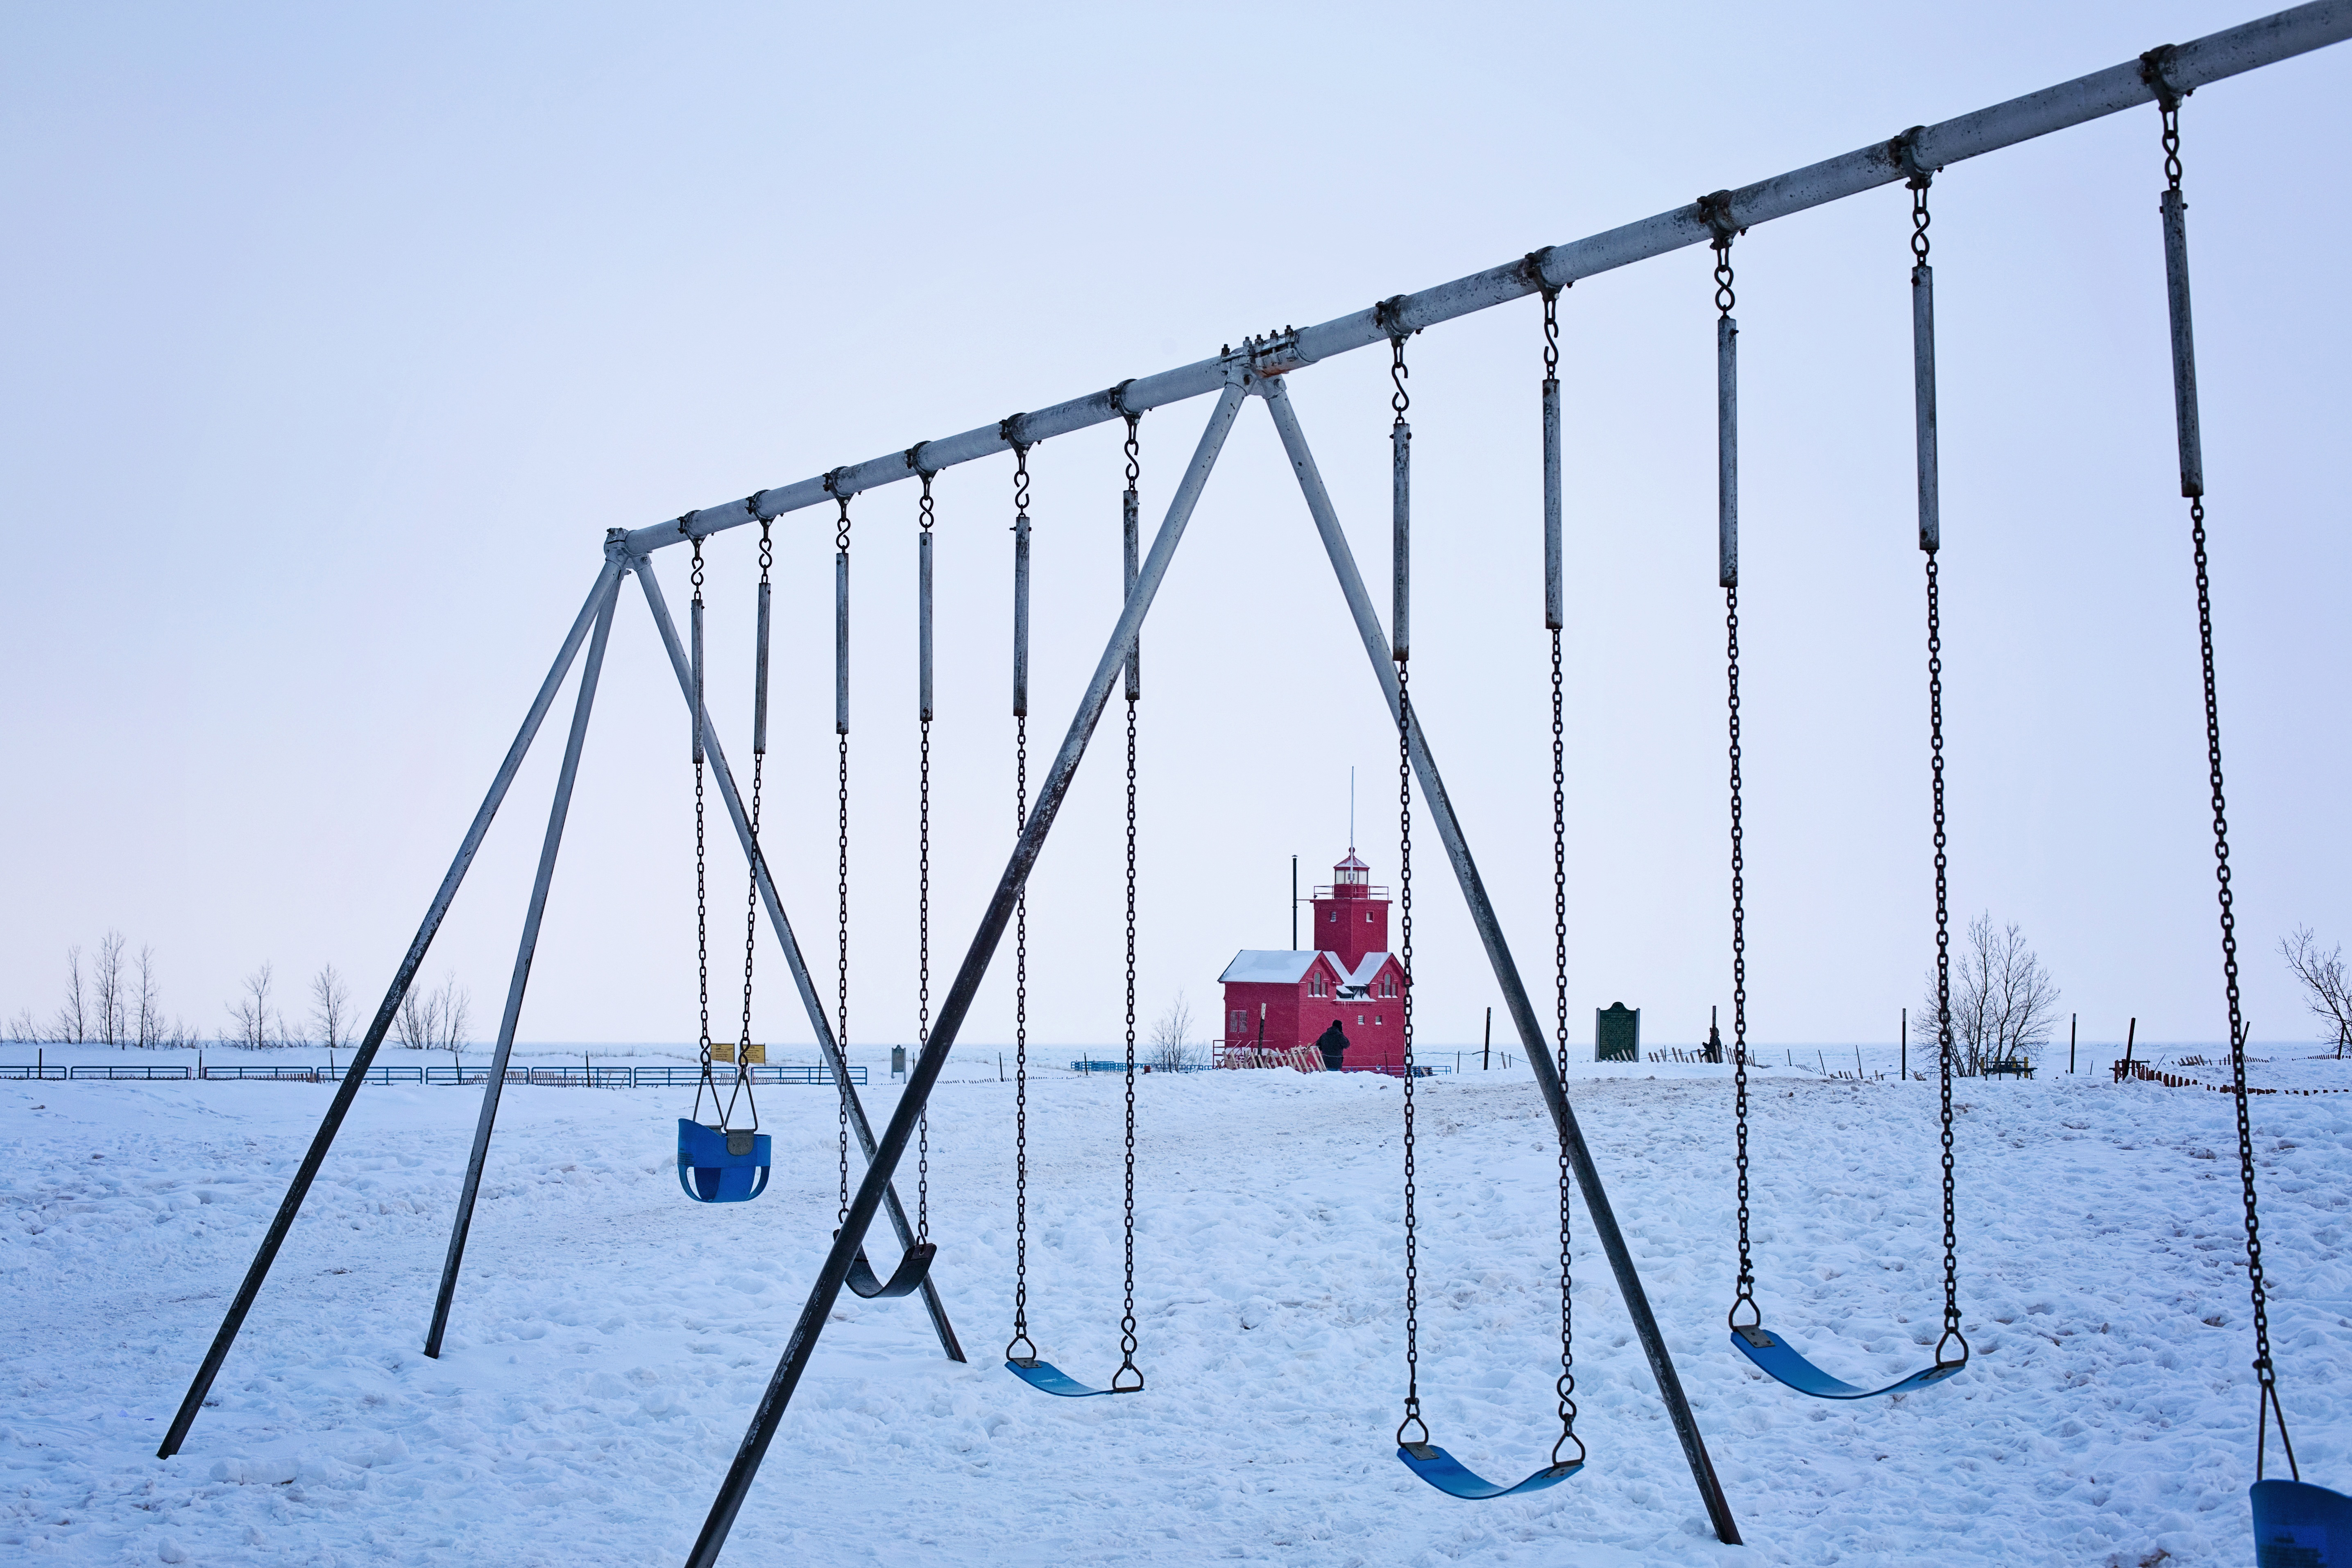 Playground,swing,winter,ice,house